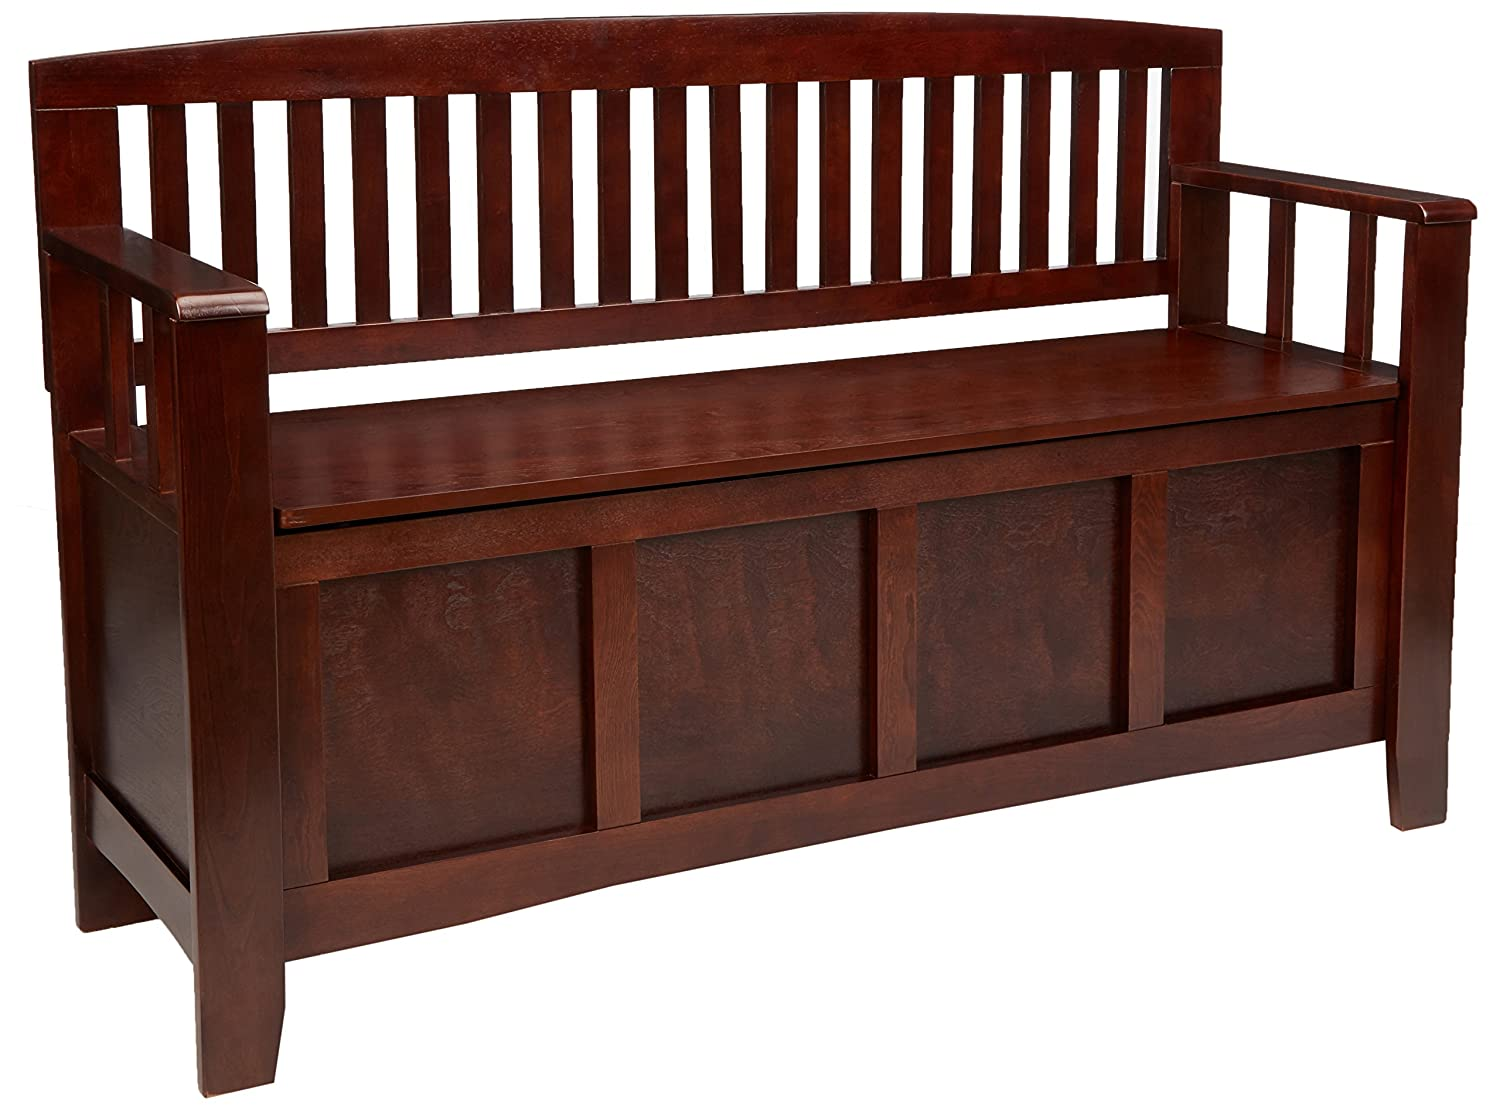 Linon Home Decor Cynthia Storage Bench 83985WAL-01-KD-U